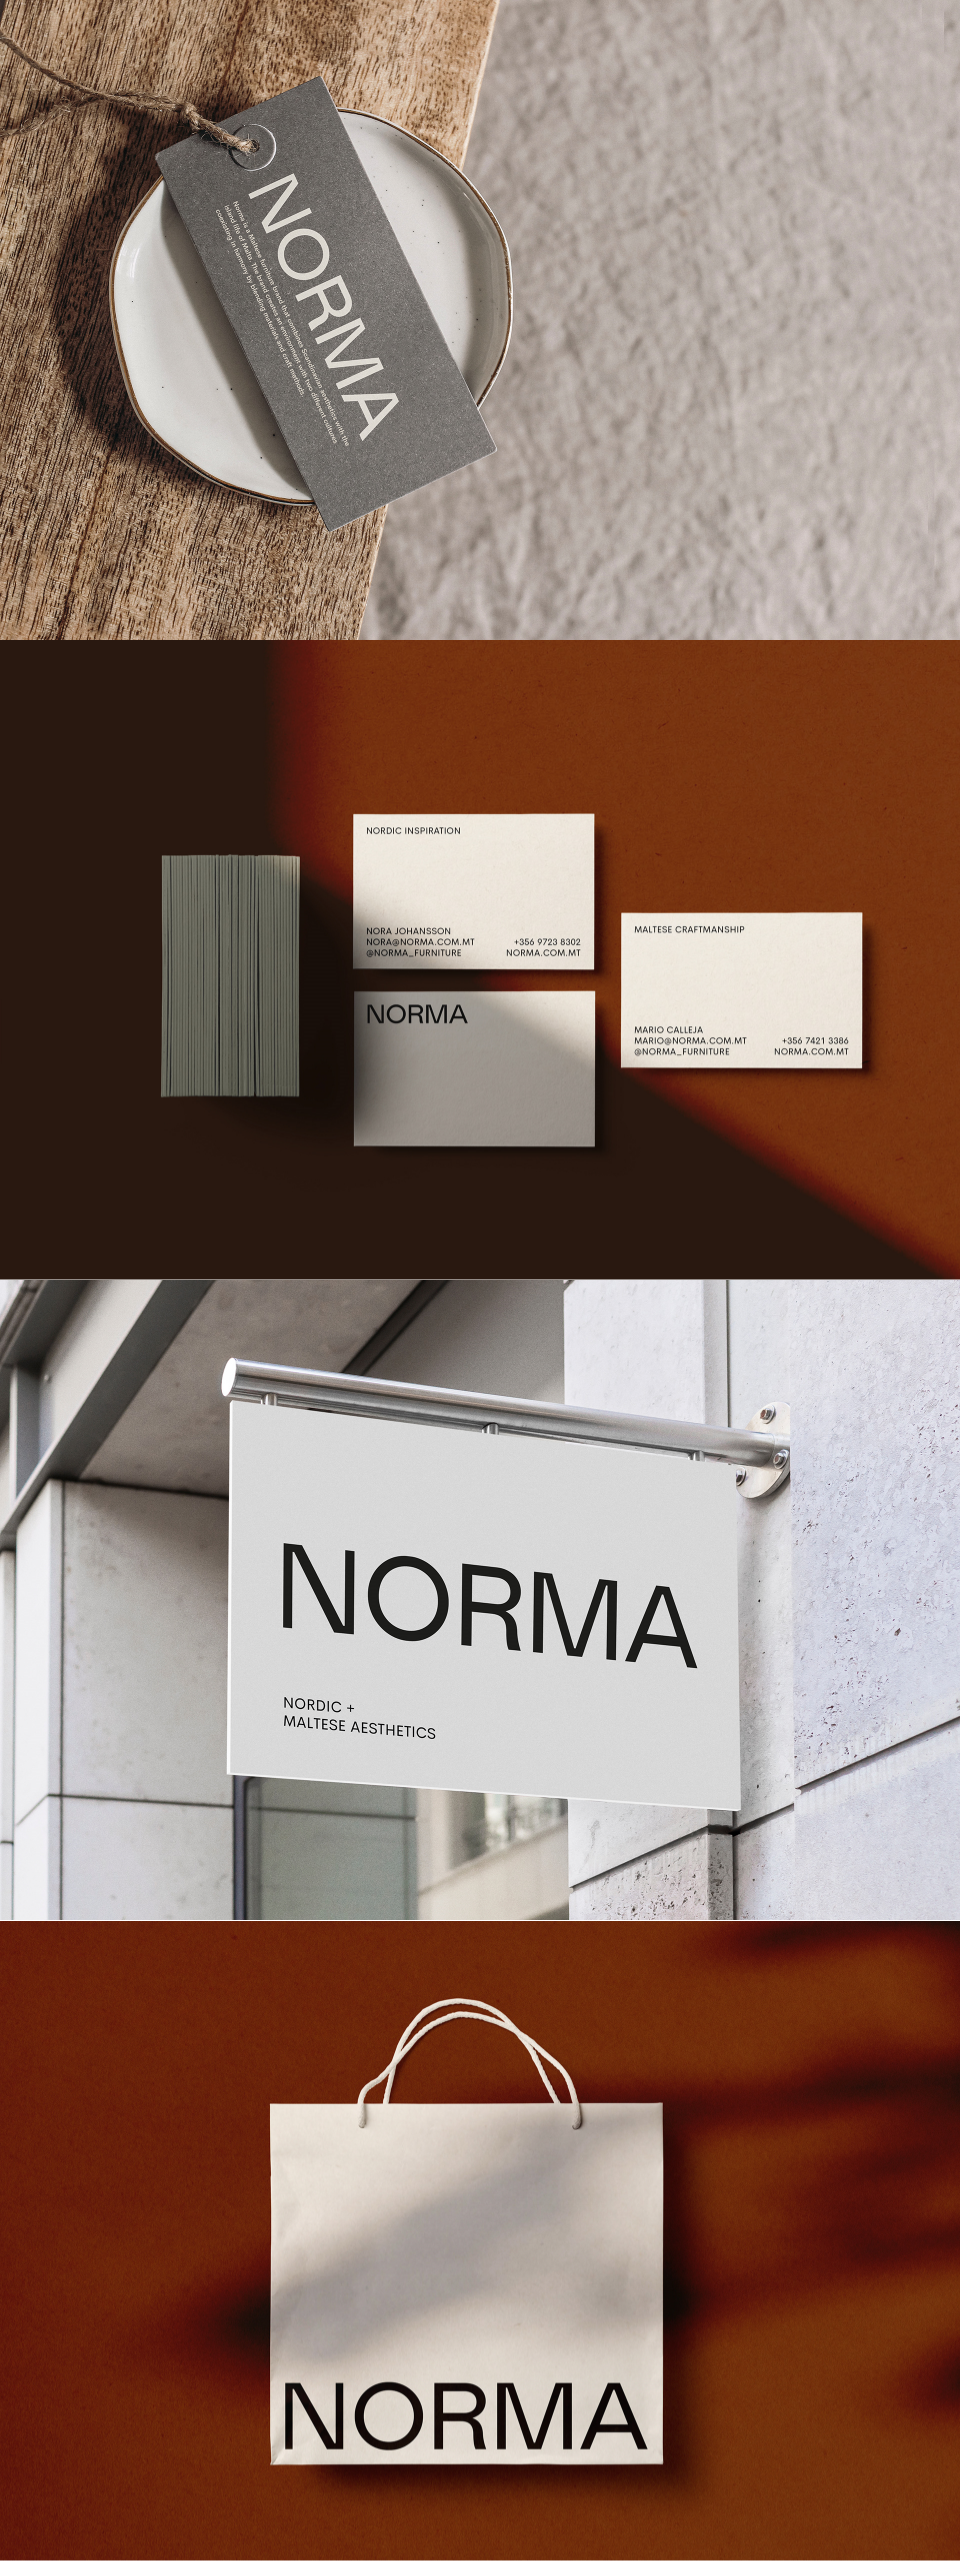 Branding,Graphic Design